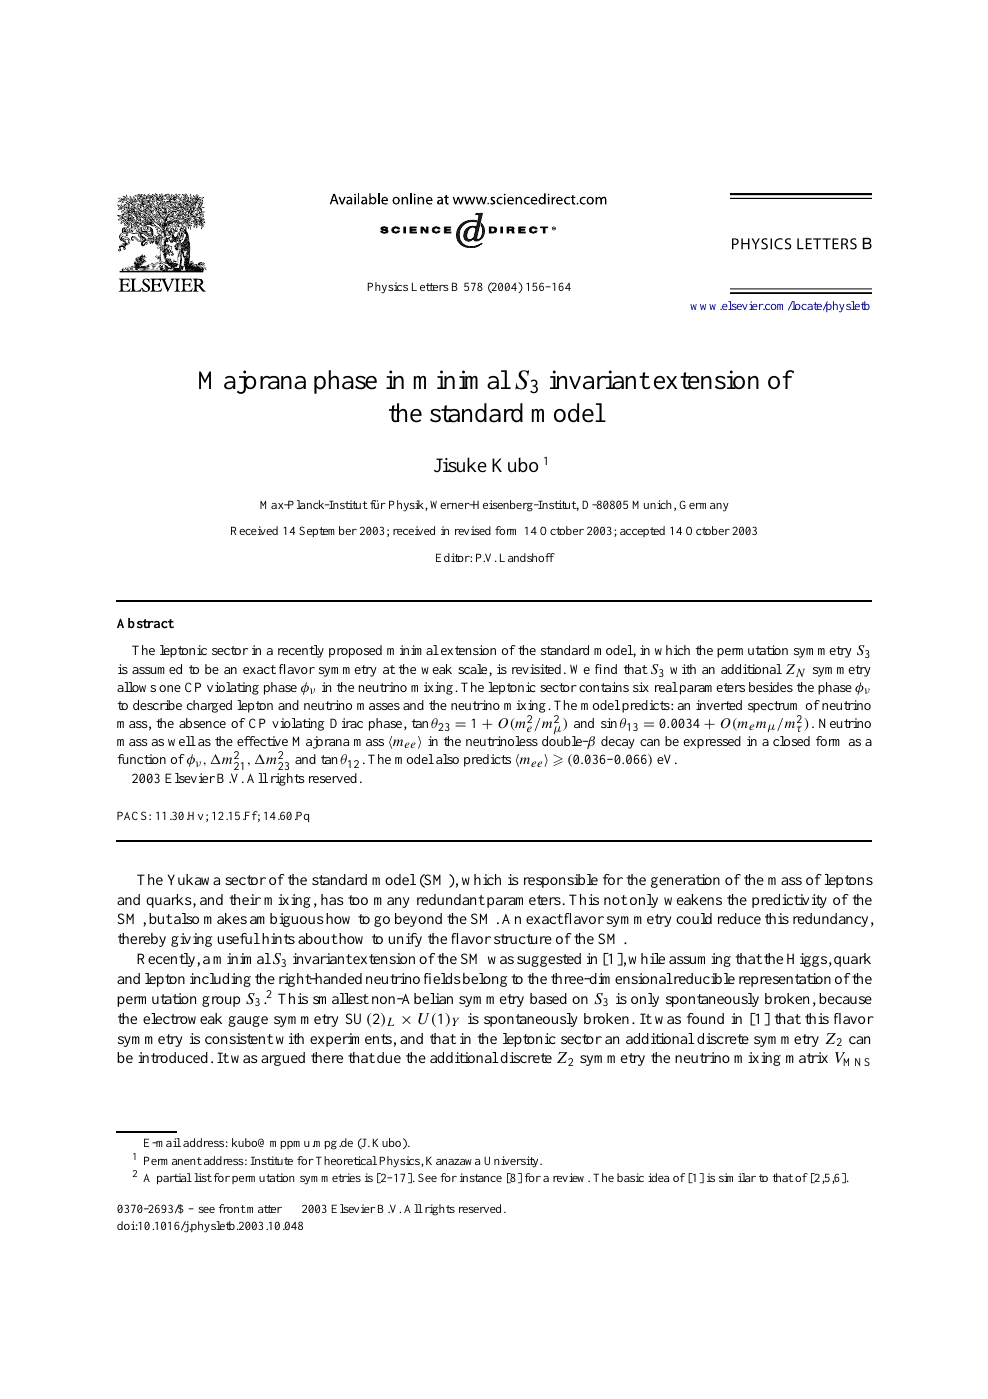 Majorana phase in minimal S3 invariant extension of the